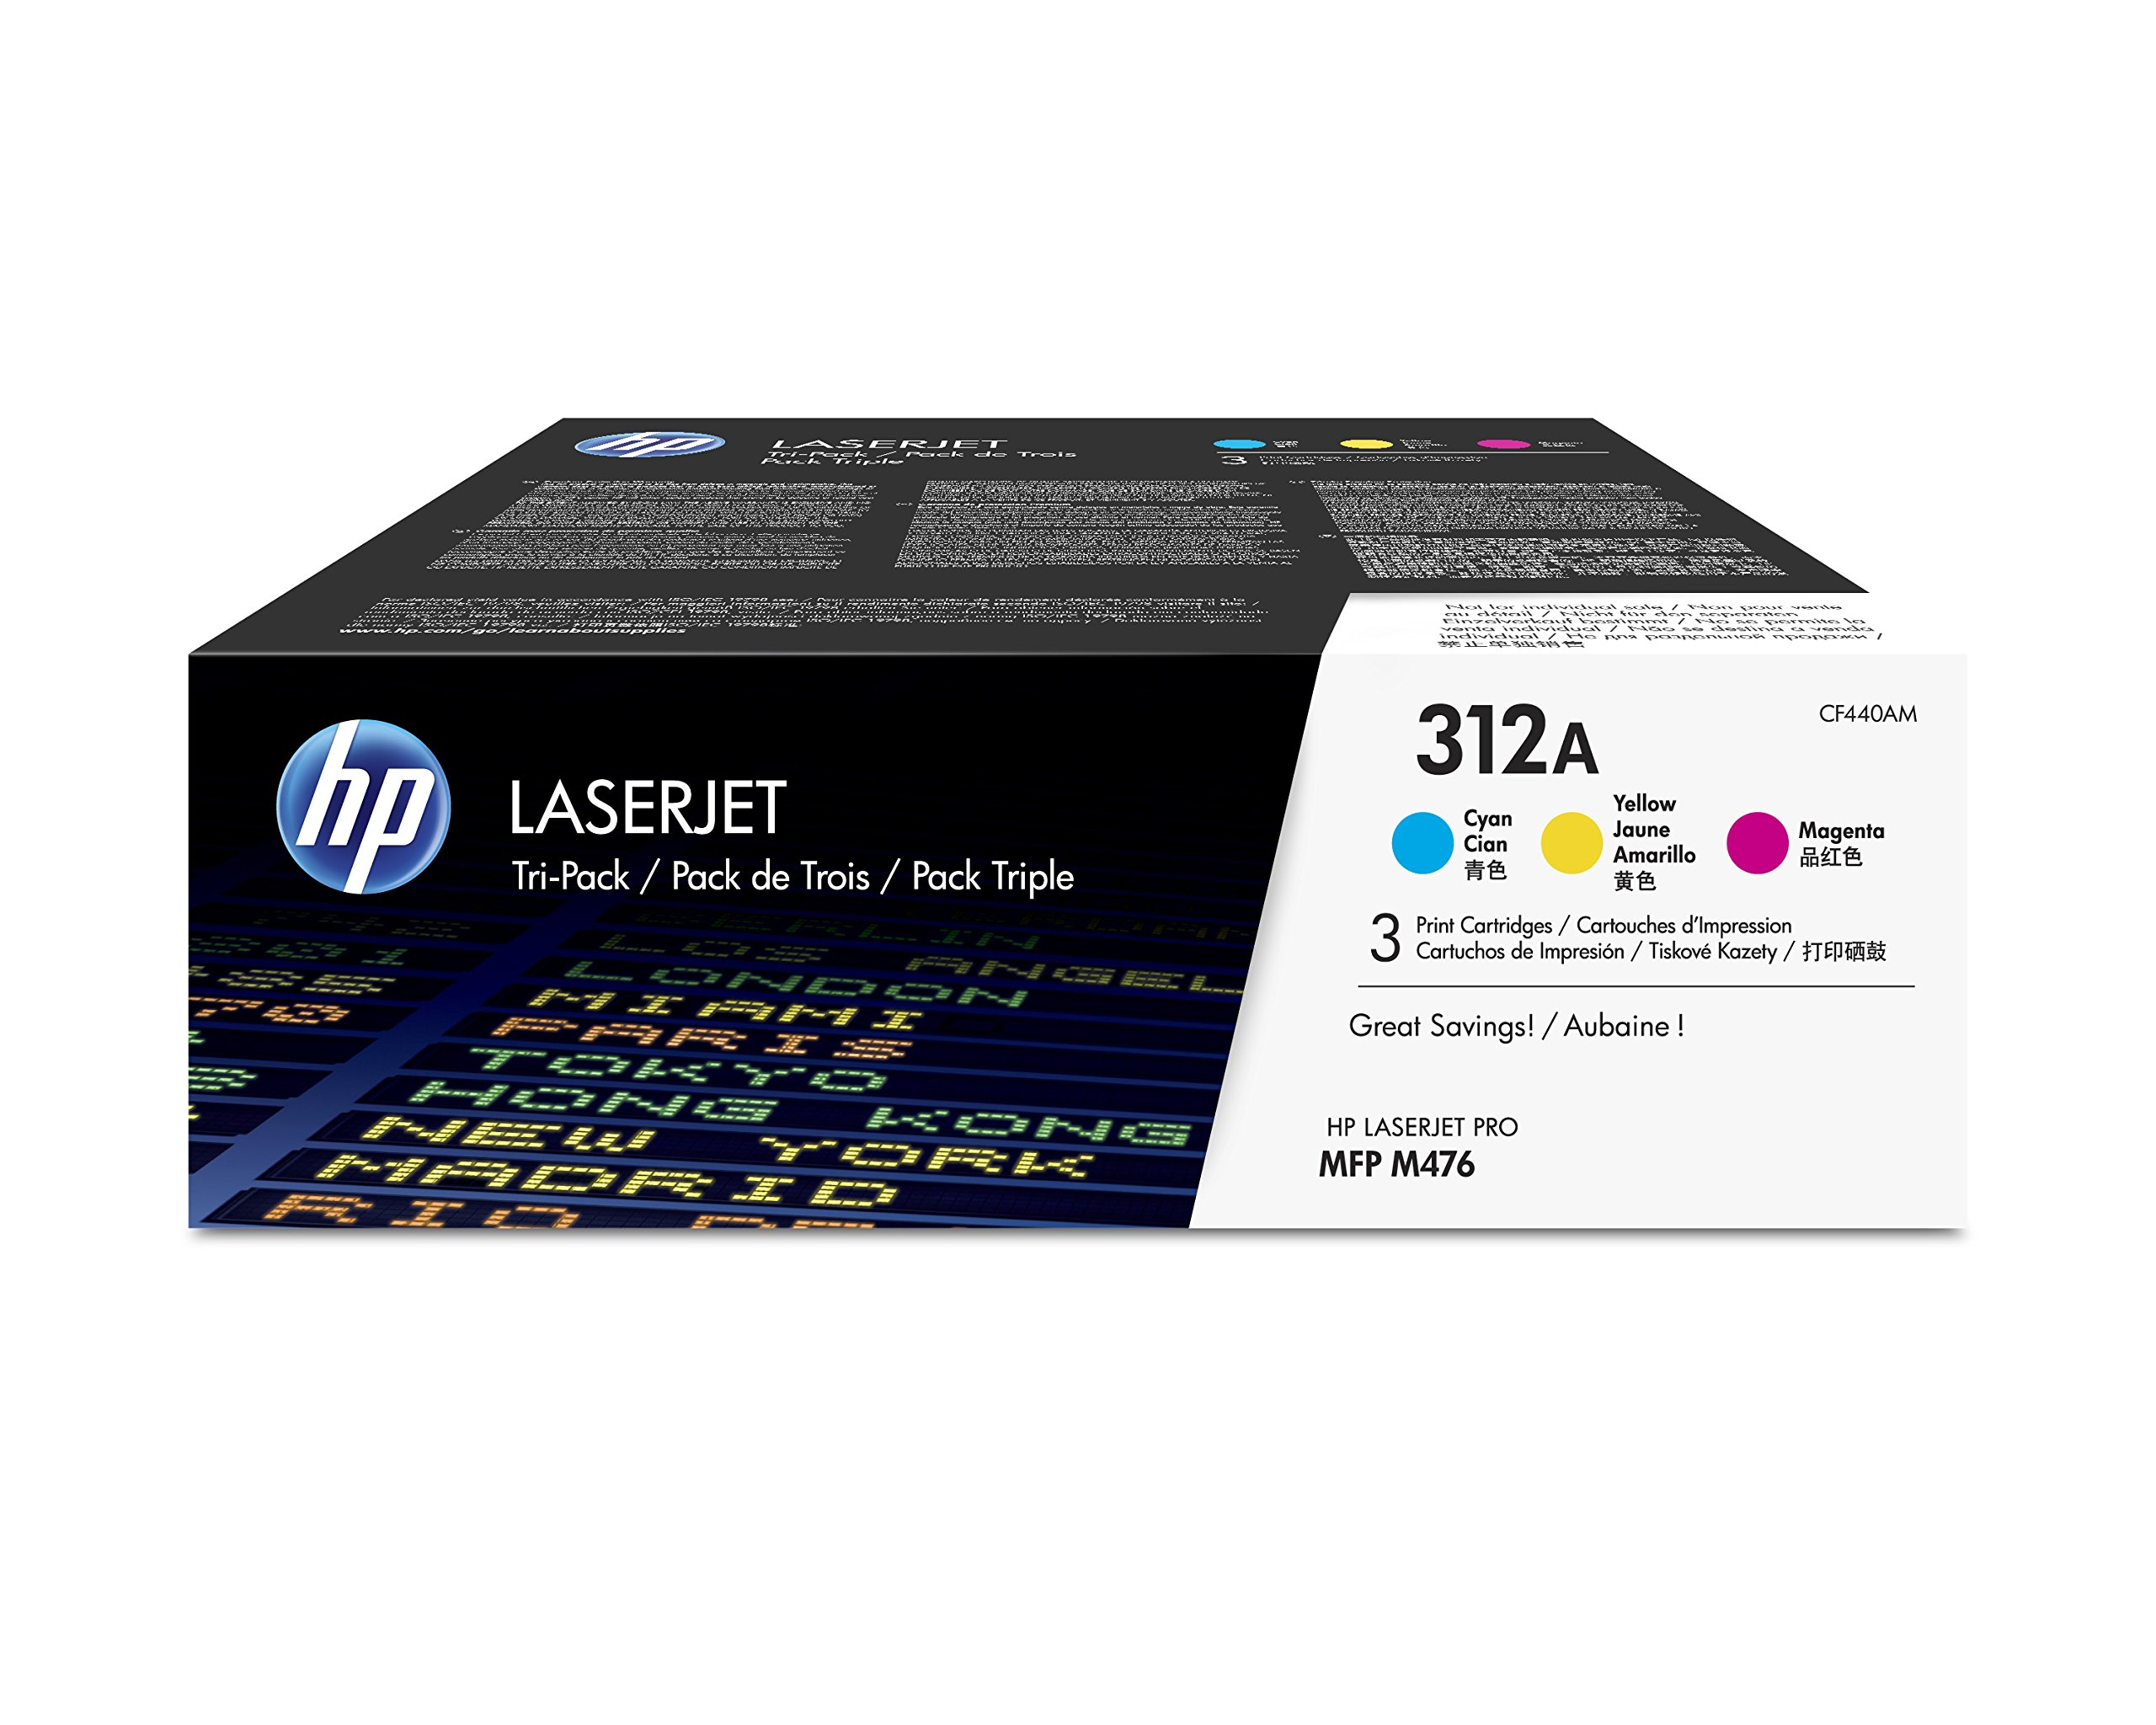 HP CF440AM 312A Cf440A-M Original LaserJet Toner Cartridges Pack Of 3 Cyan Magenta Yellow